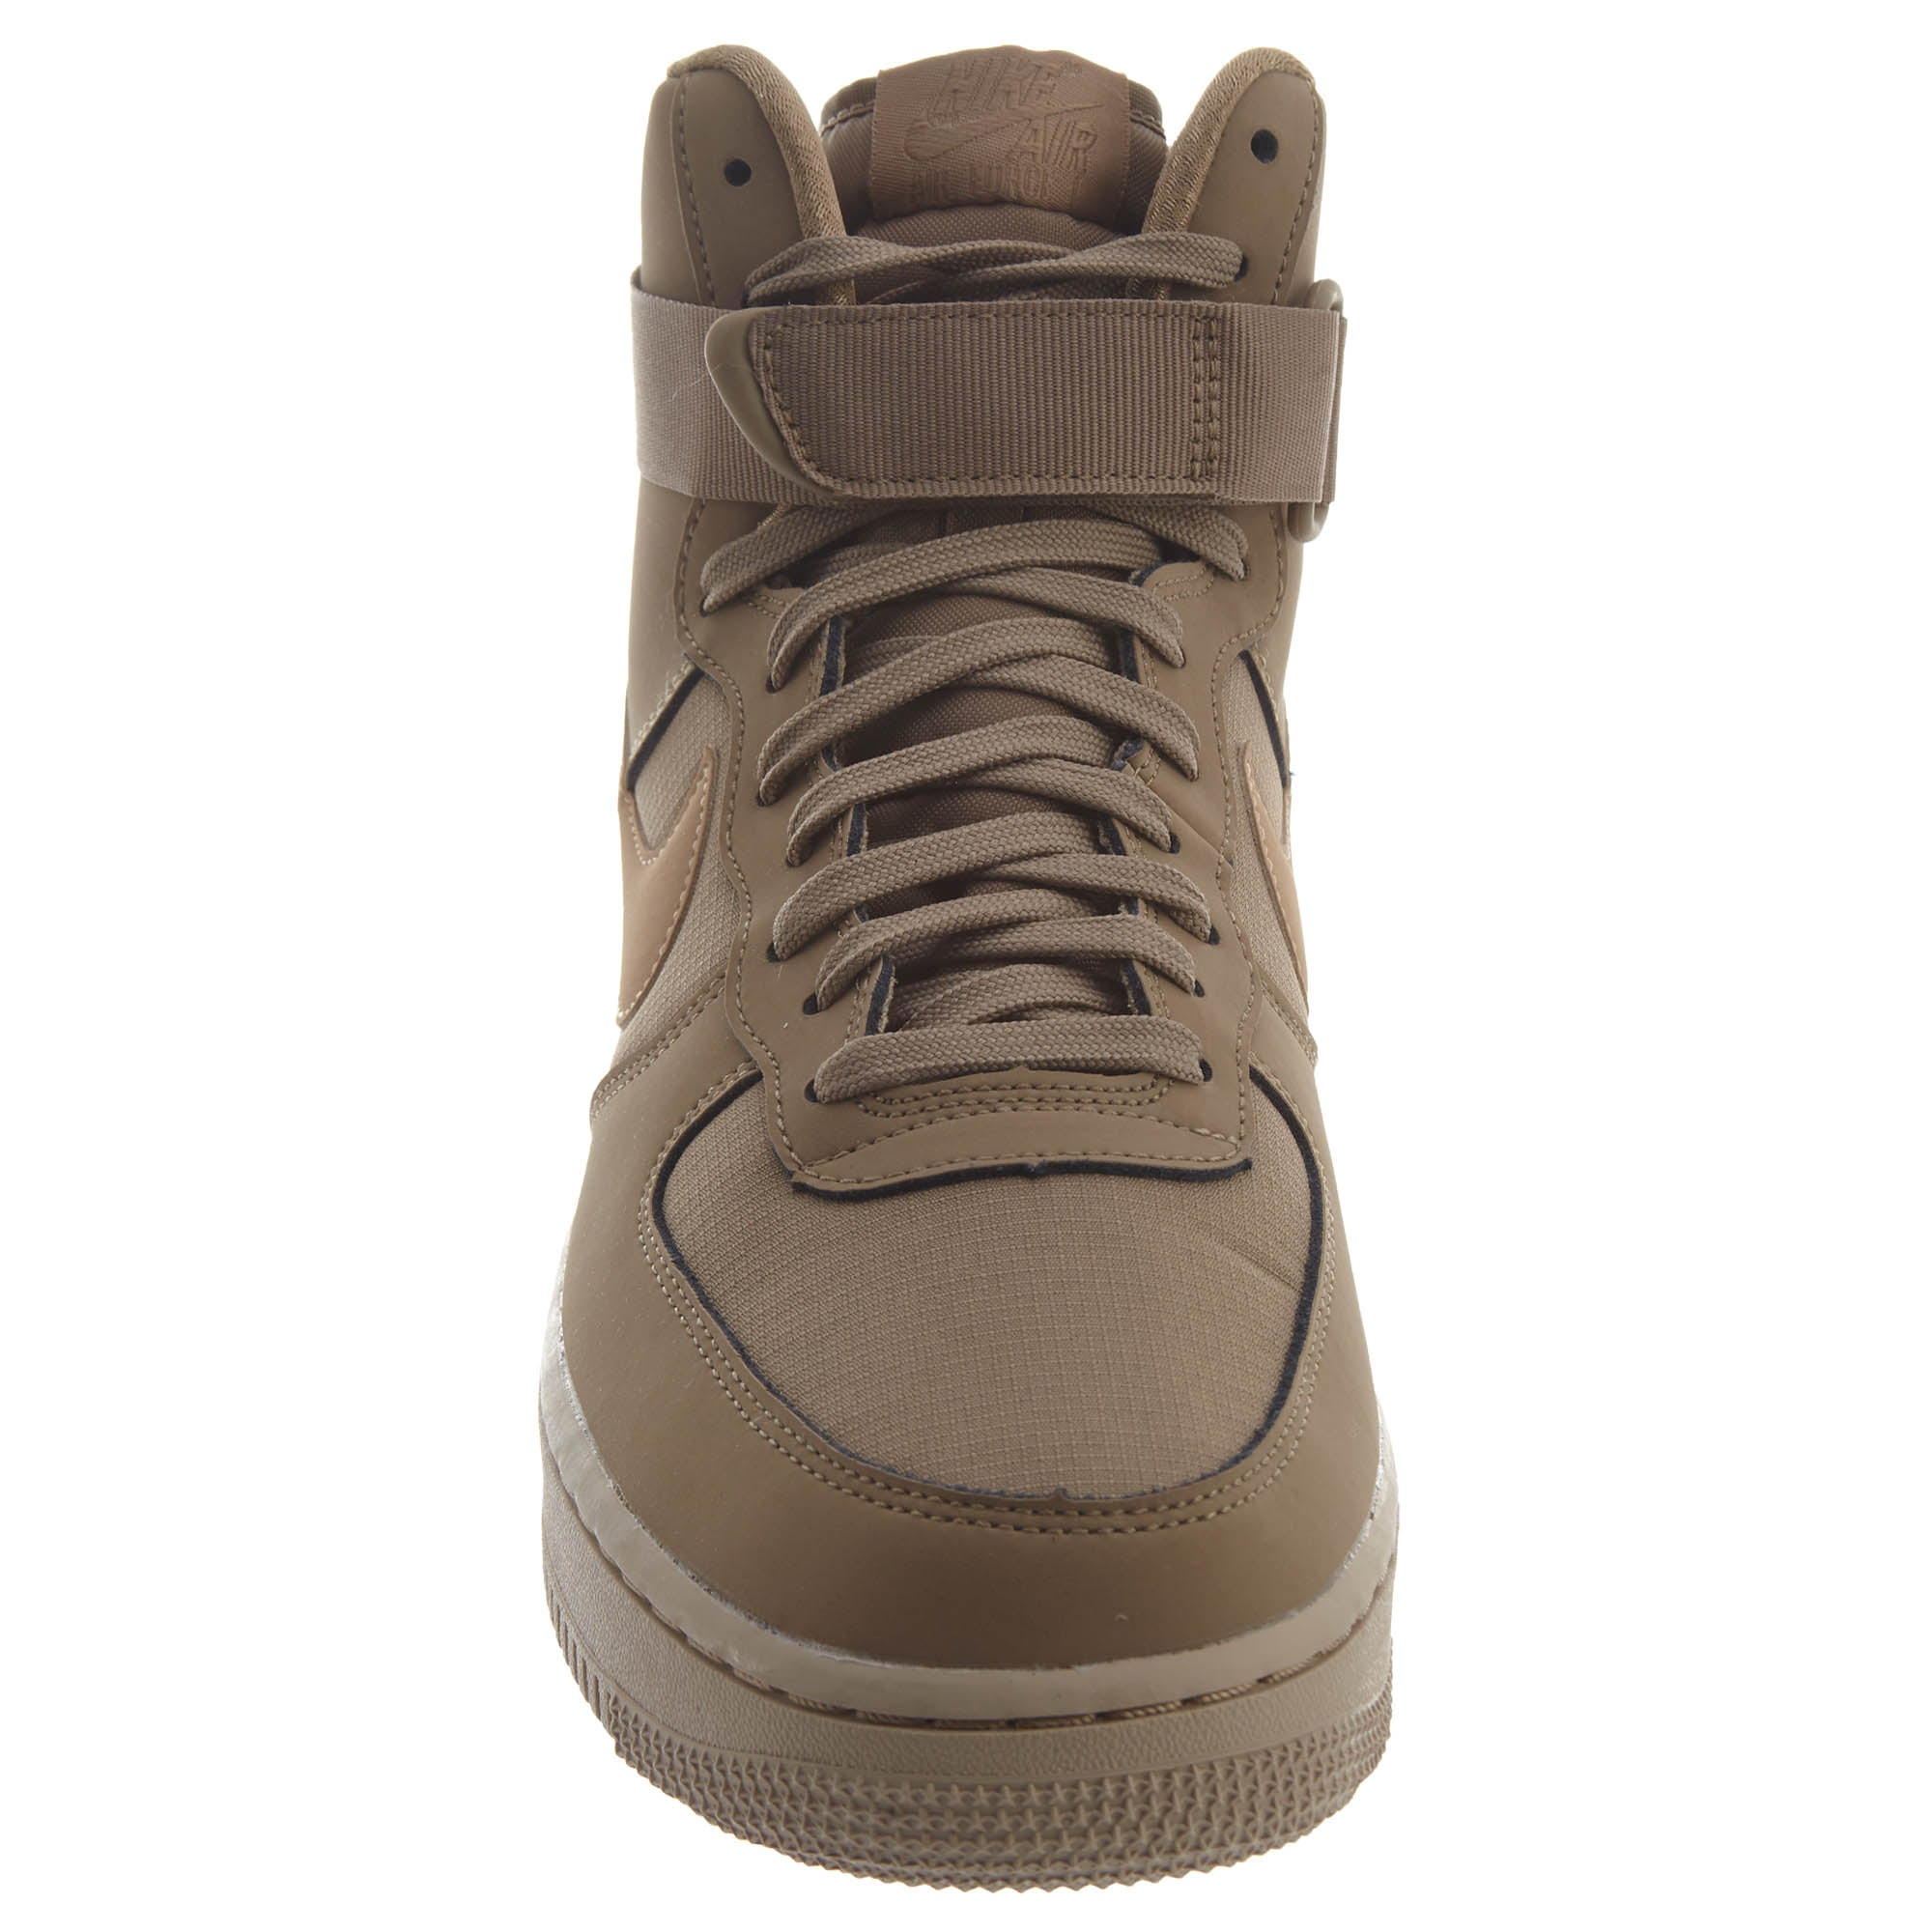 Nike Air Force 1 High '07 Mens Style : 315121-206